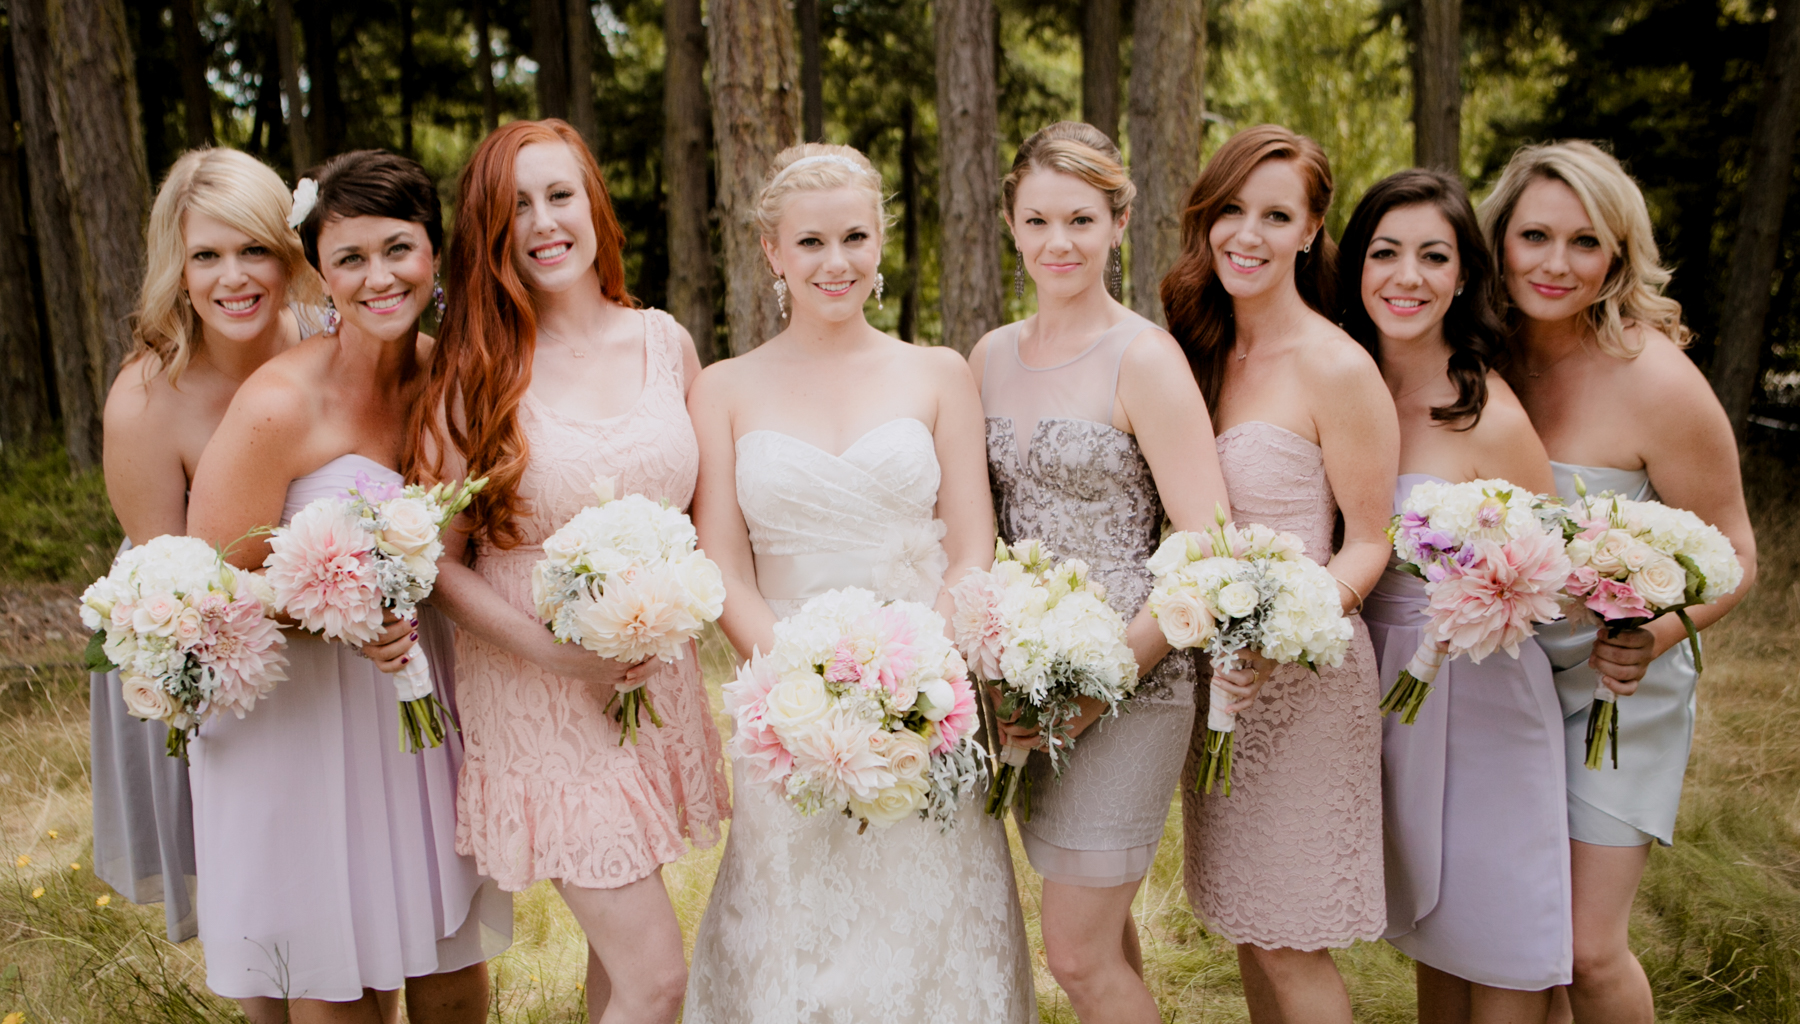 The girls all wore a dress of their choosing and looking fabulous. This NW weddings was on San Juan Island, just 1.5 hours and a ferry ride north of Seattle. This resort features both indoor and outdoor areas for a true NW experience with kayaking, crabbing, boating, and even catching a seaplane back to the city.